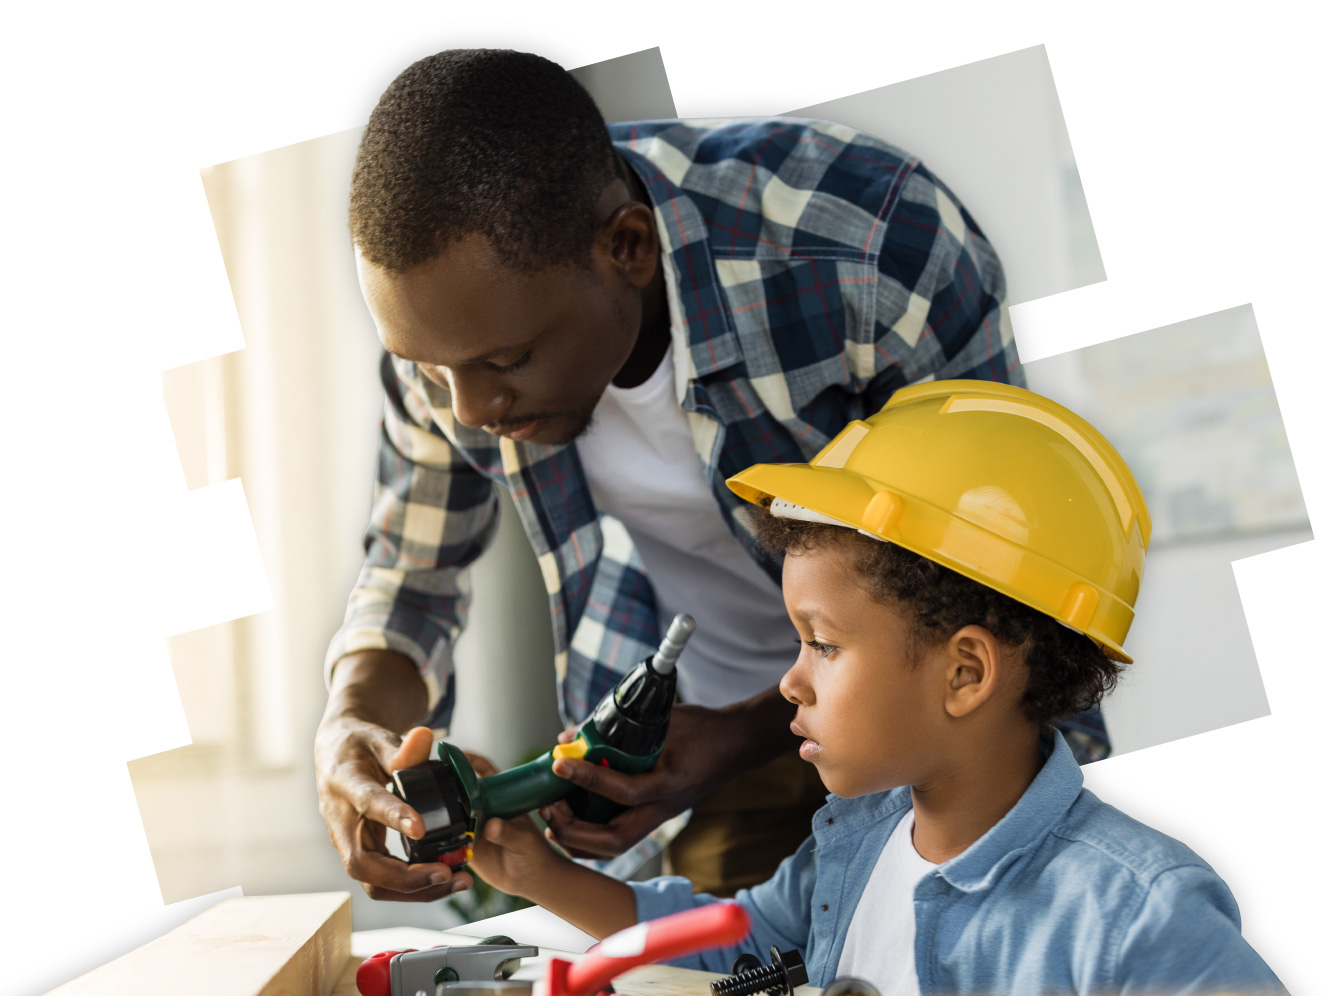 Man helping child with tools